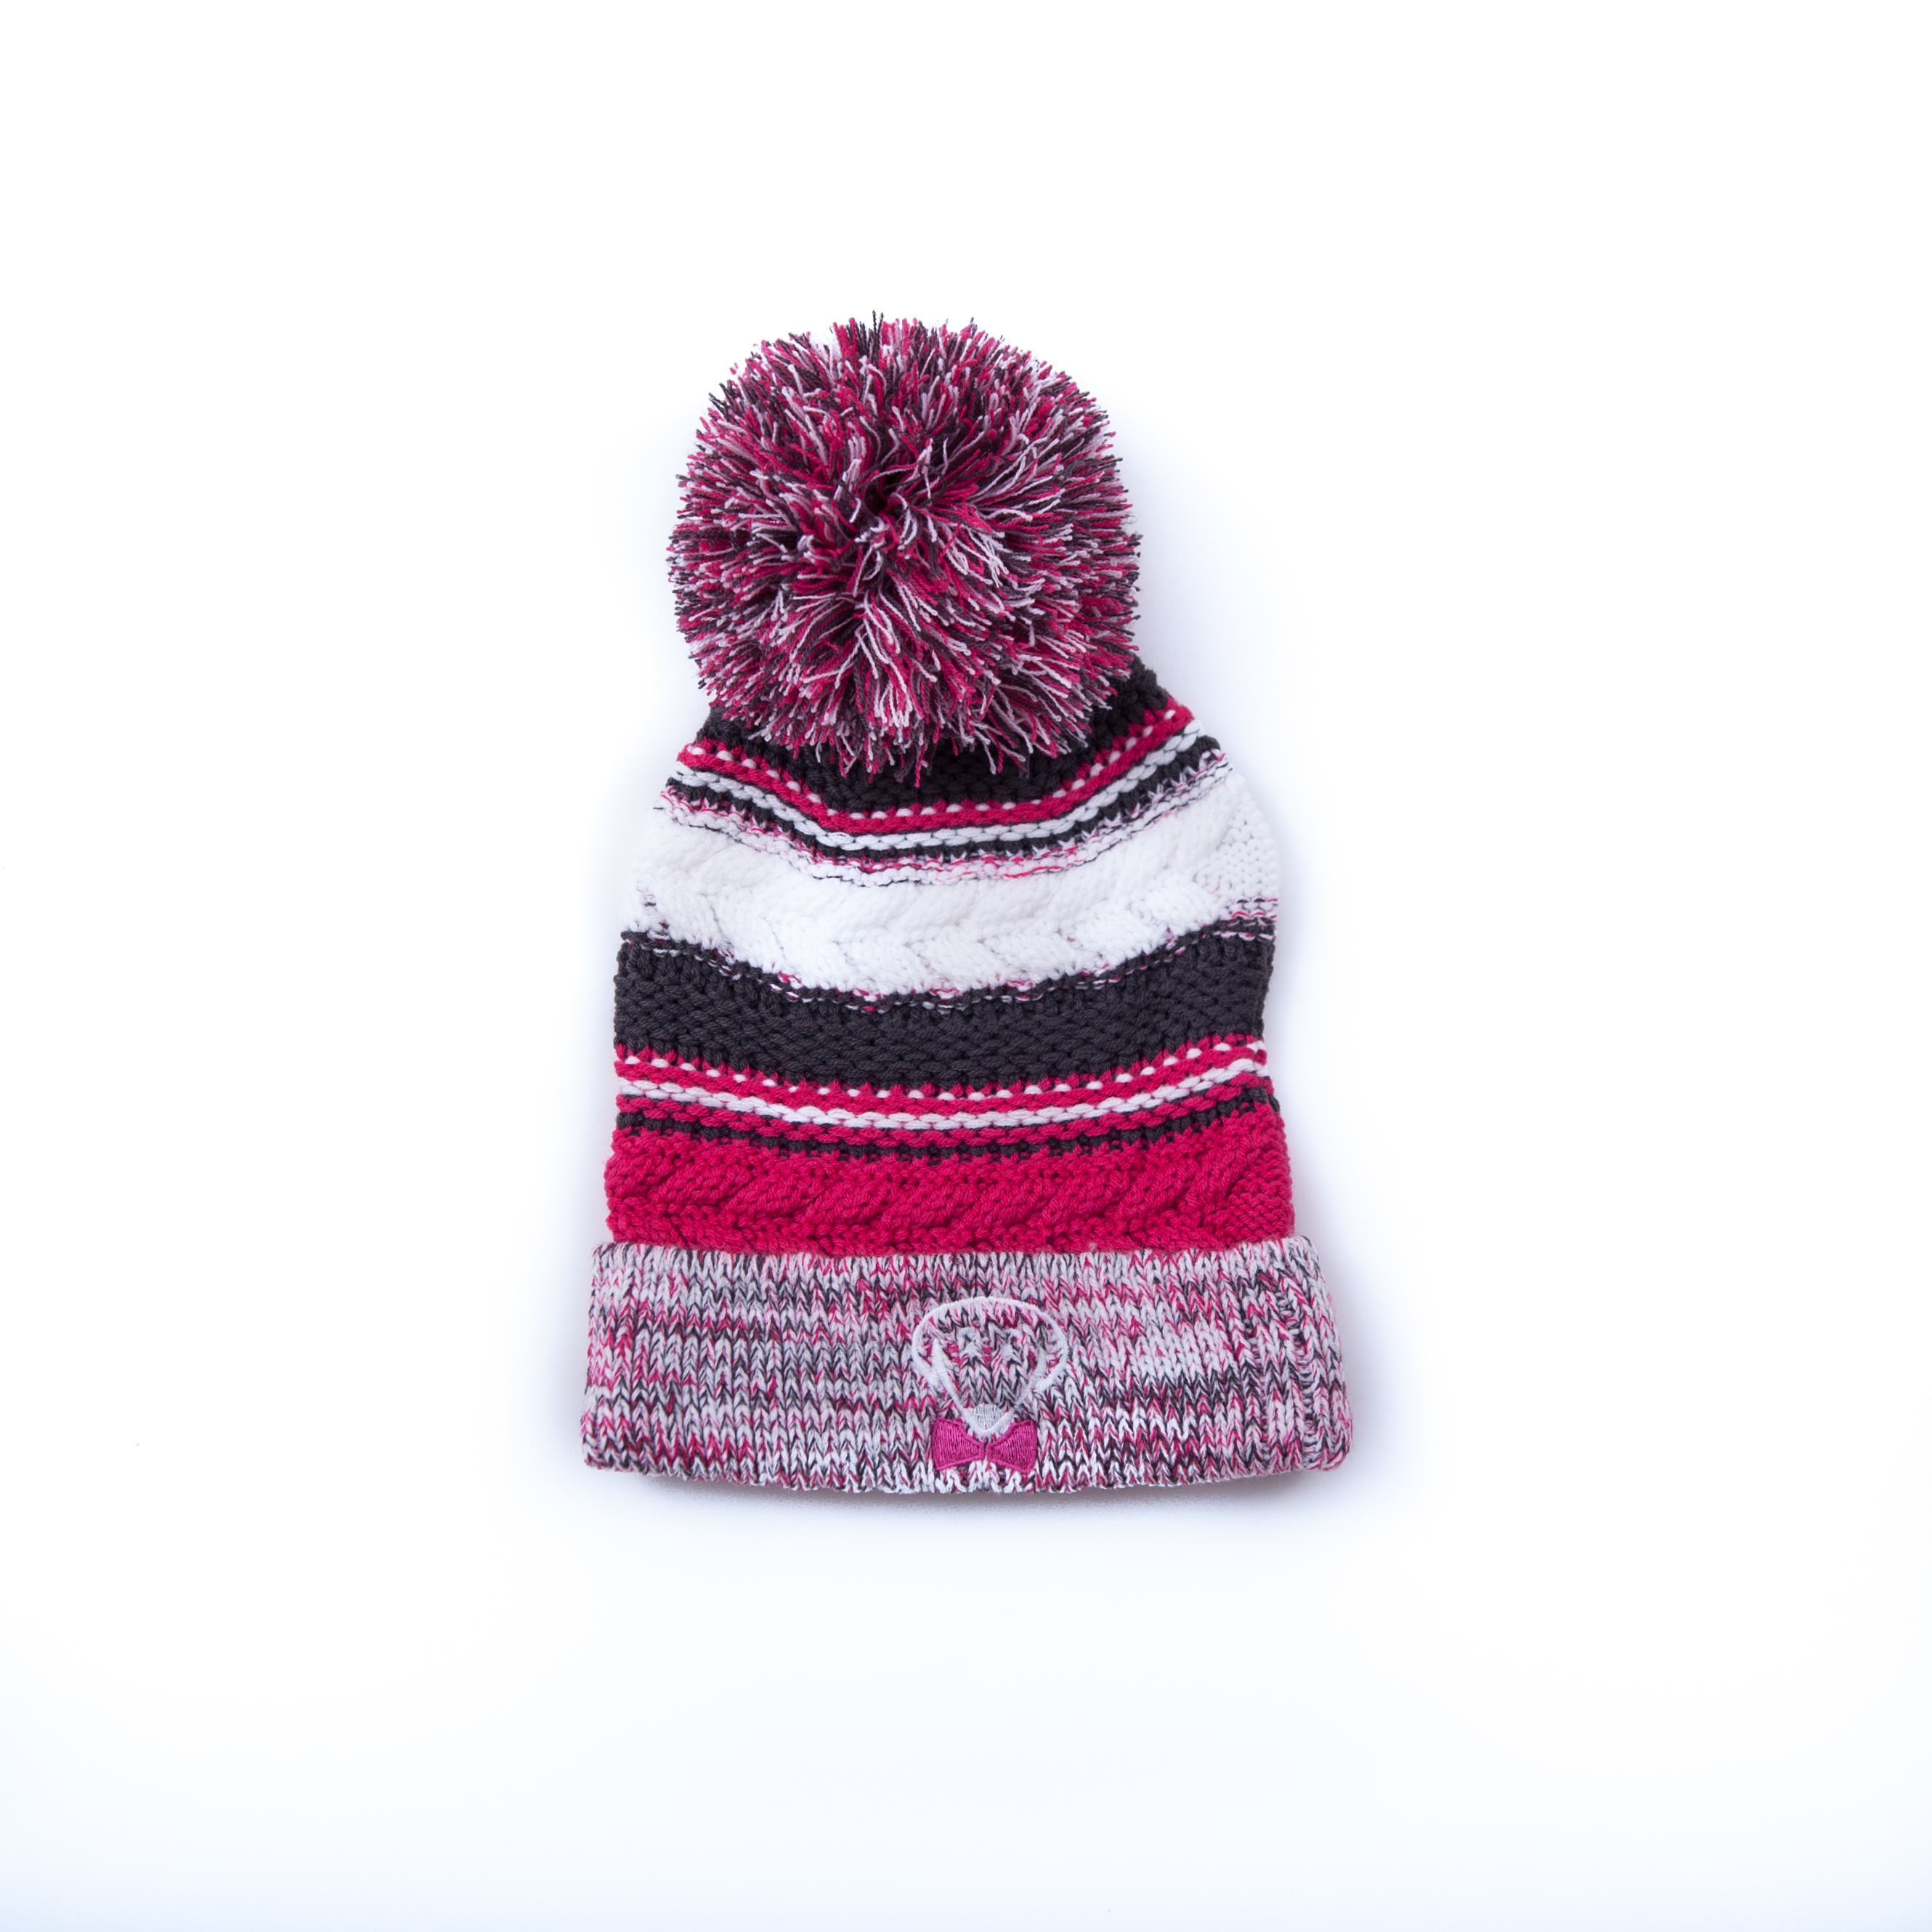 Pink raspberry, iron grey, and white winter knit hat – Stay Warm, Look Cute